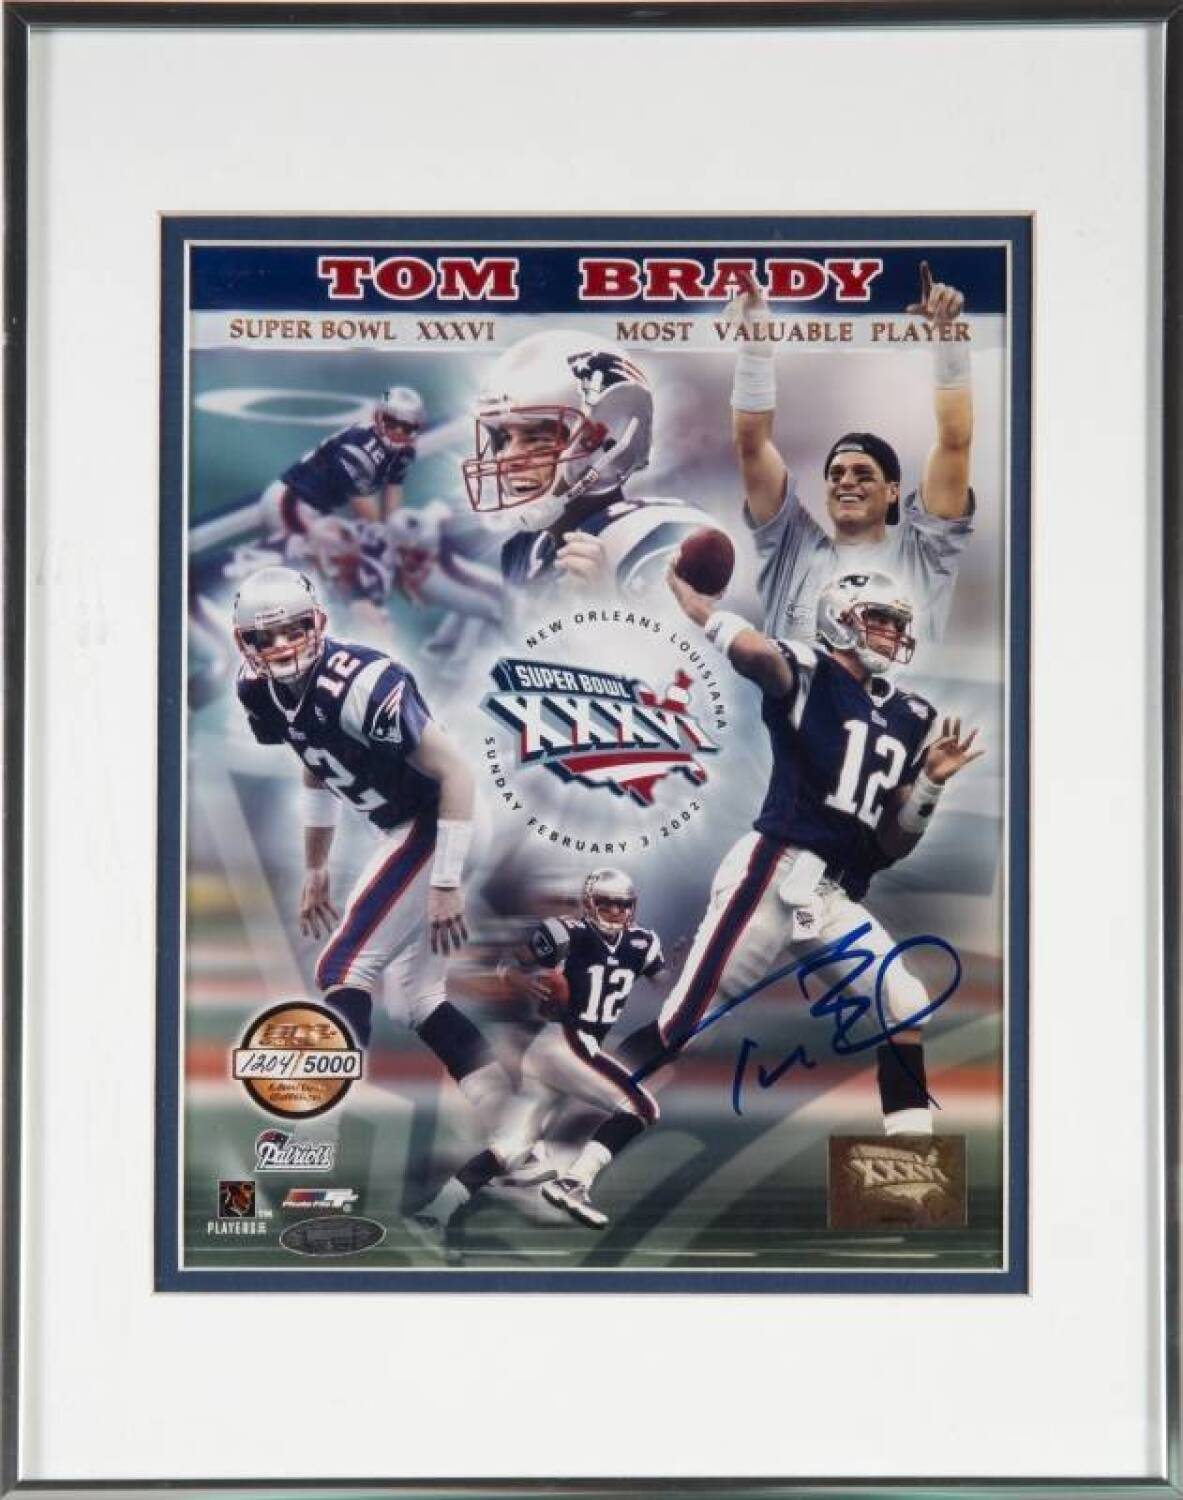 Lot 1038 of 174  TOM BRADY SIGNED SUPER BOWL XXXVI MVP LIMITED EDITION  PHOTOGRAPH 3f9d38a0b